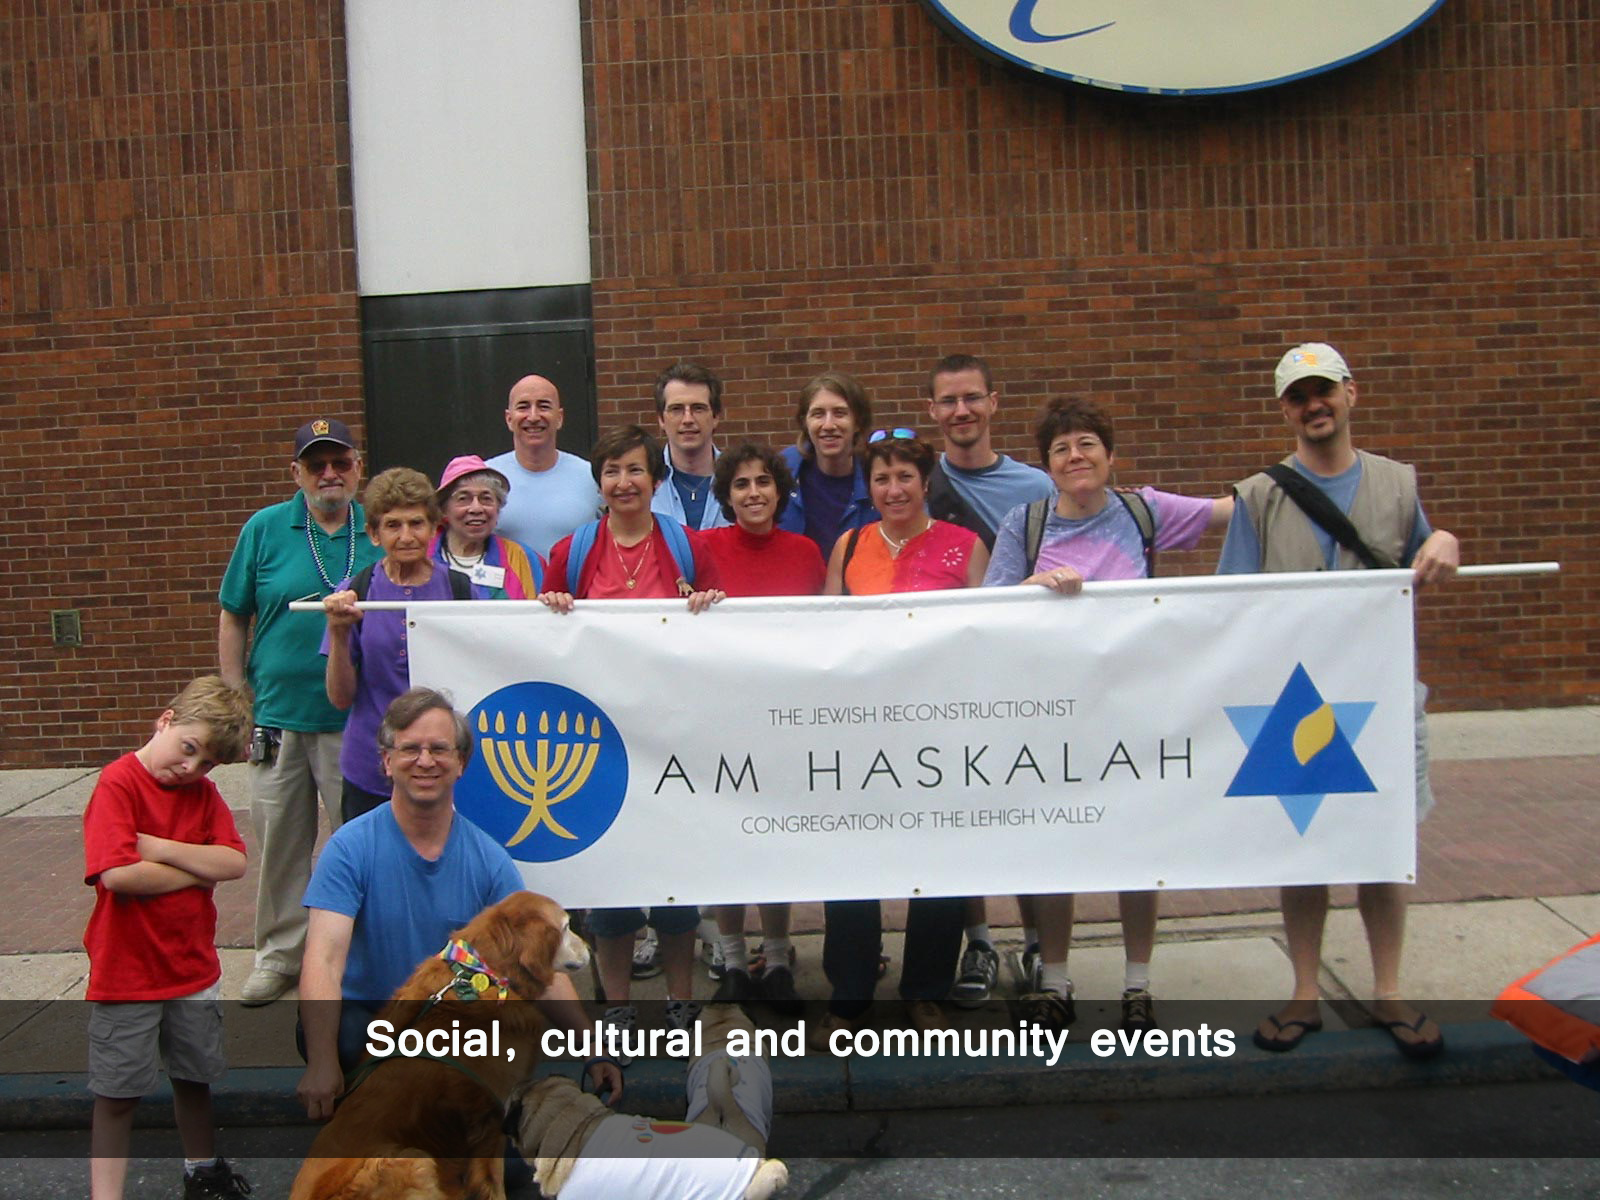 Social, cultural and community events